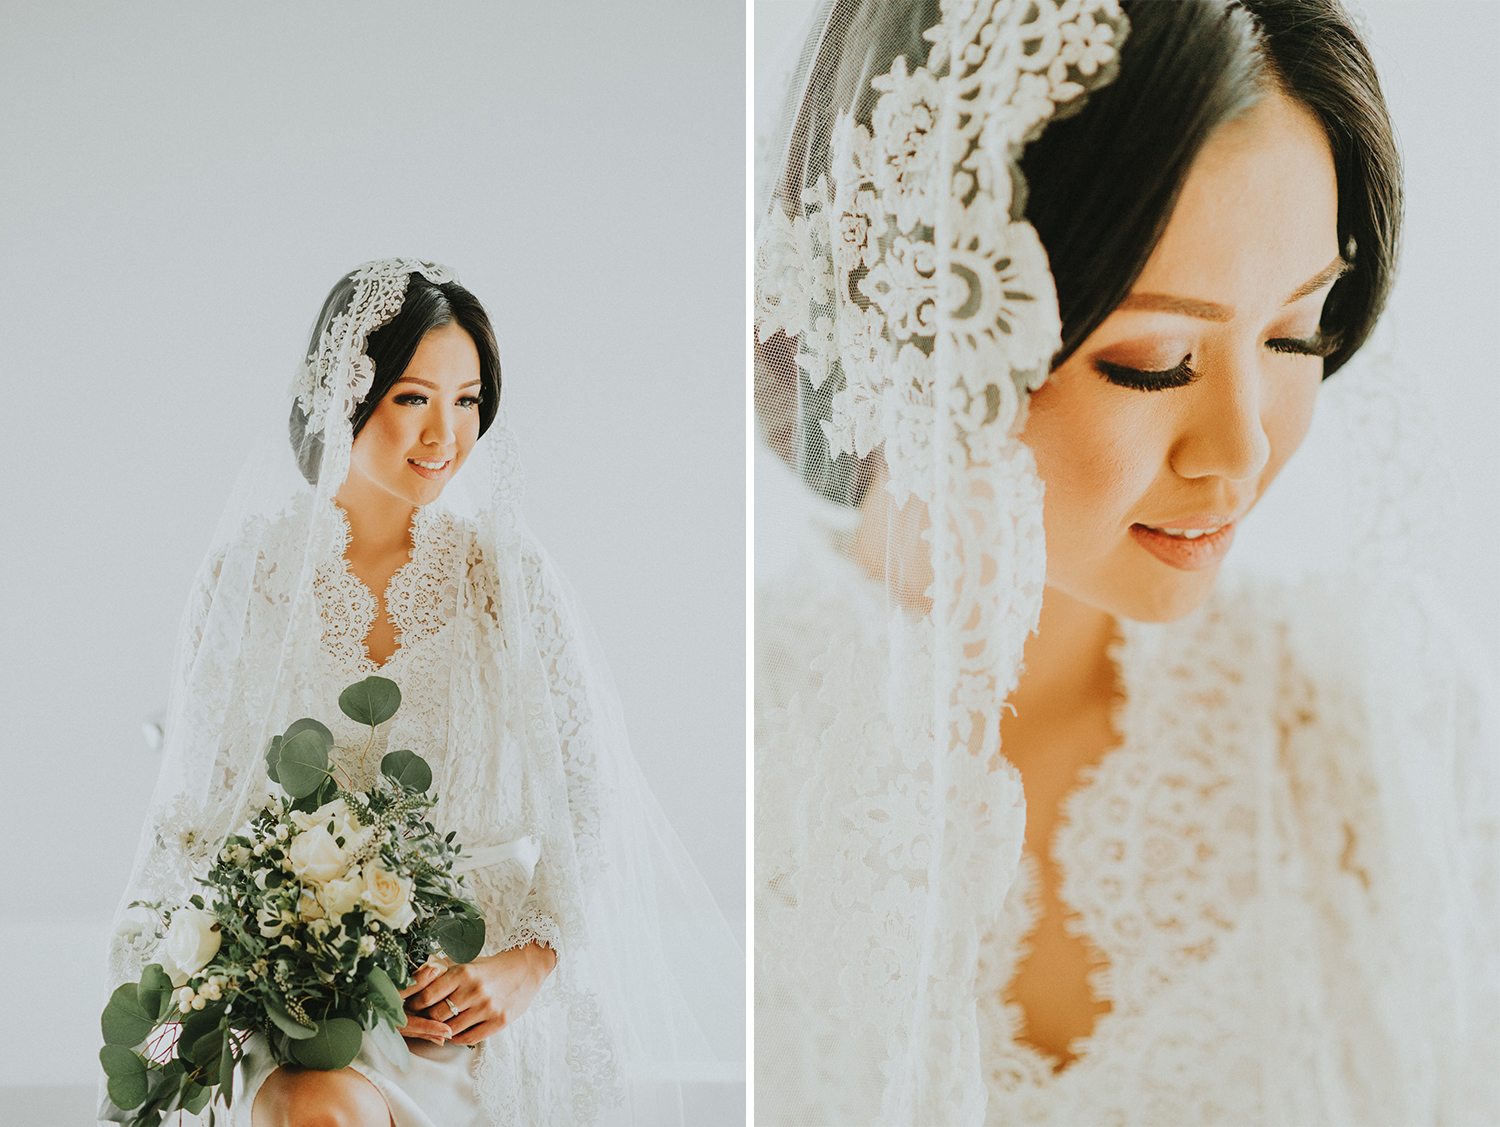 jakarta wedding-destination wedding-bali wedding photographer-diktatphotography-kadek artayasa-jason+devi-40